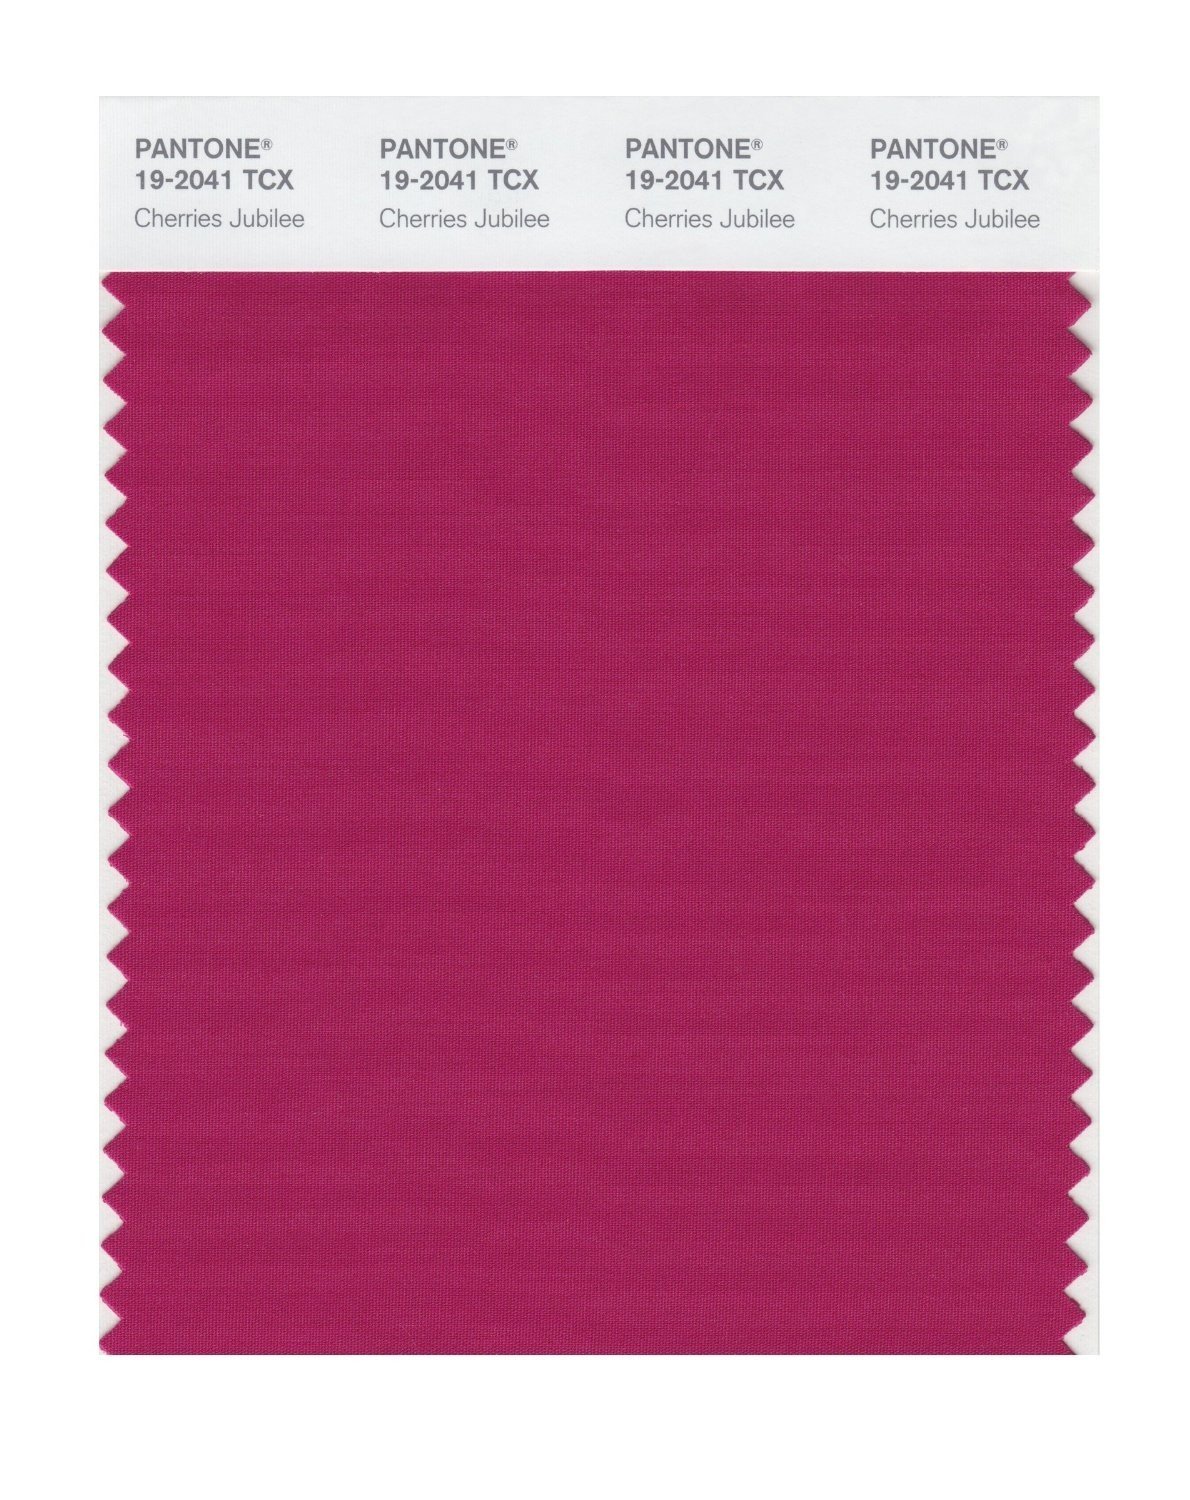 Pantone 19-2041 TCX Swatch Card Cherries Jubilee